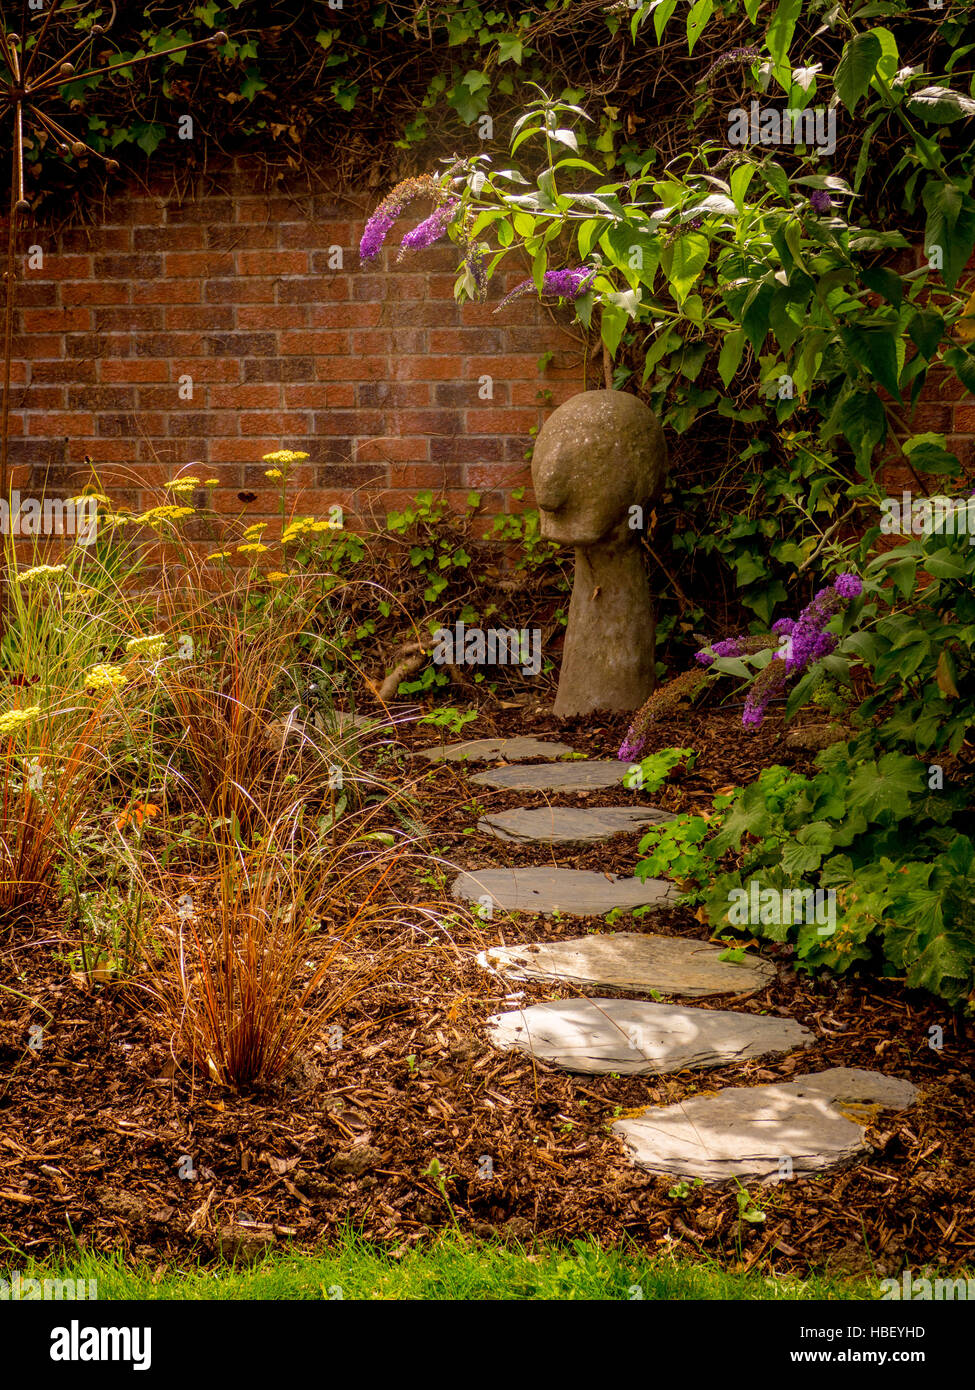 Stepping Stone Path Through Garden Flower Bed With Bark Chippings And Brick  Wall